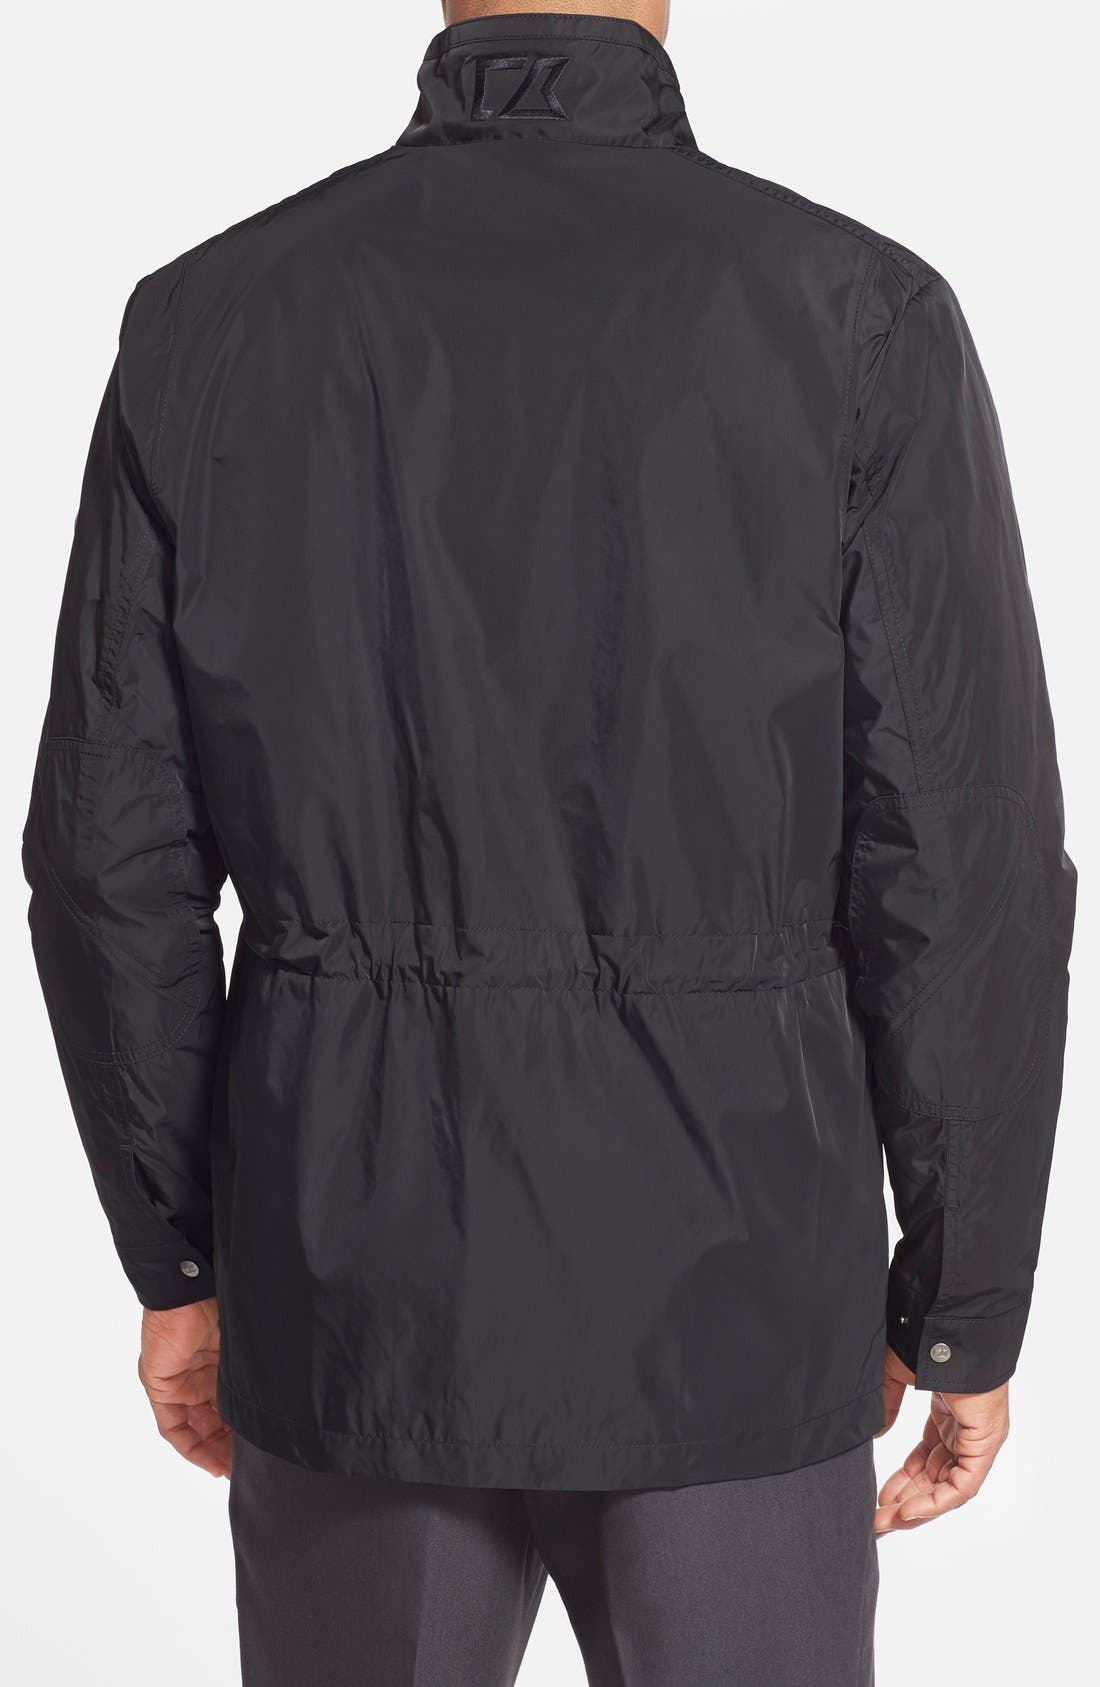 Birch Bay Water Resistant Jacket,                             Alternate thumbnail 2, color,                             Black